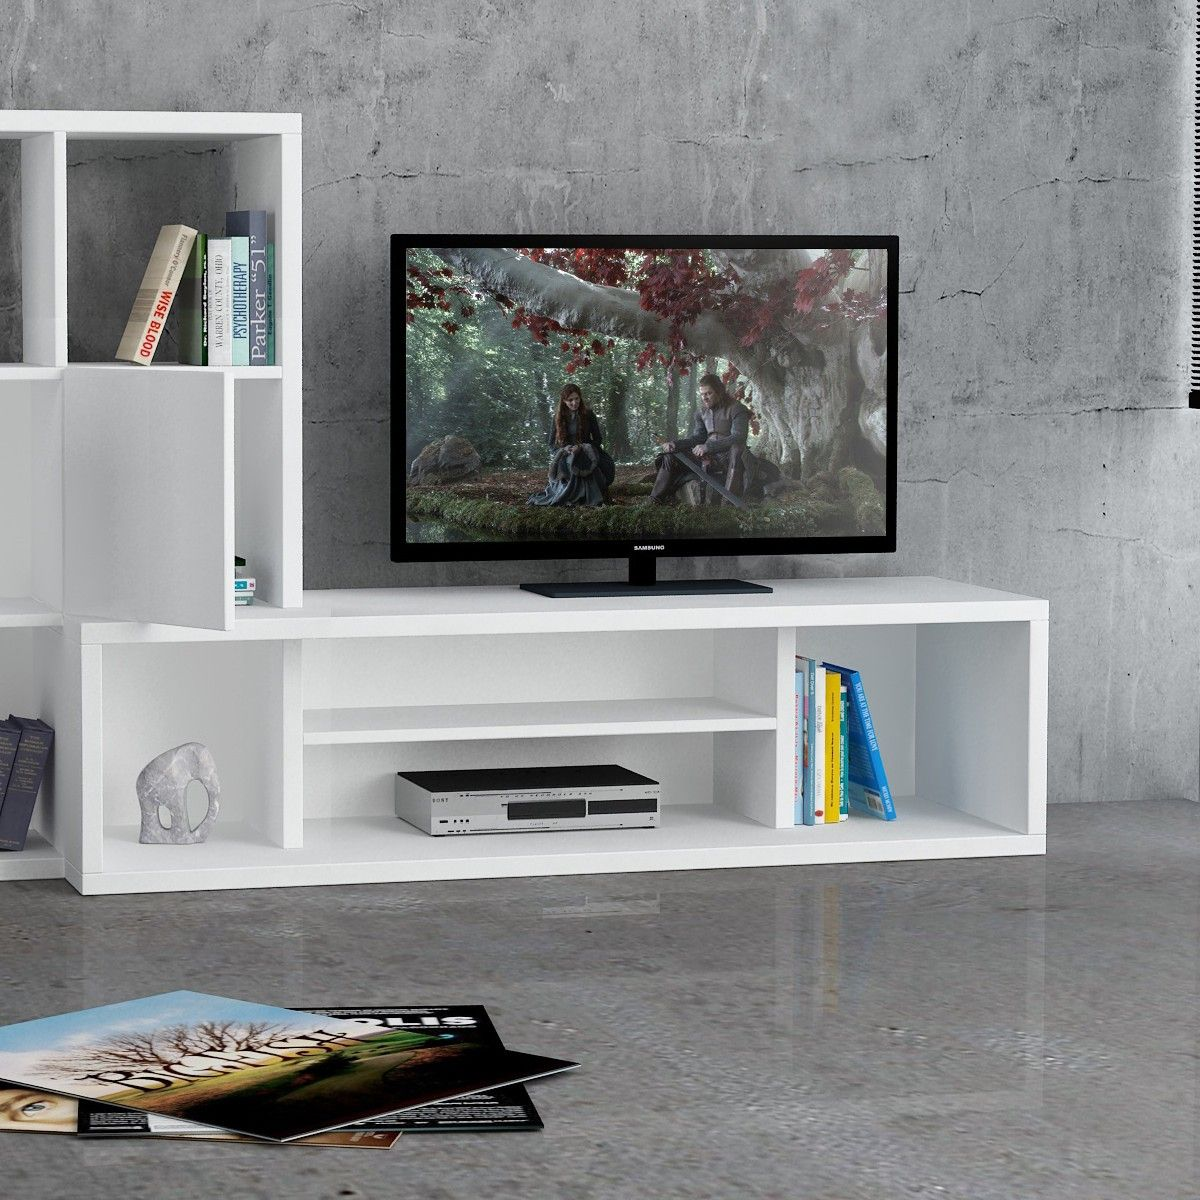 Starring mobile porta tv fisso design moderno in legno - Mobile tv moderno ...